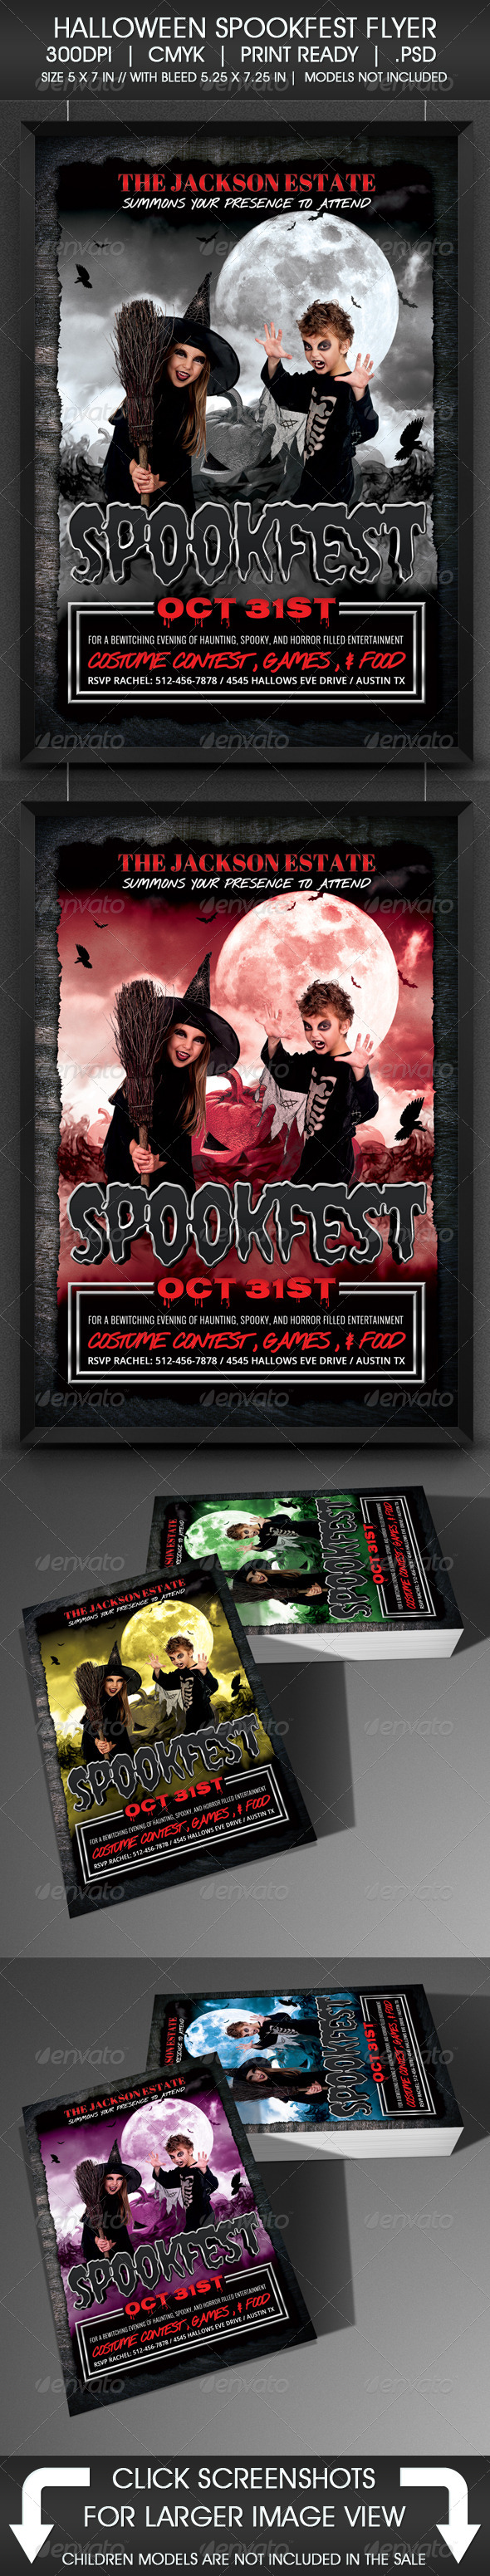 Halloween Spookfest Flyer - Holidays Events